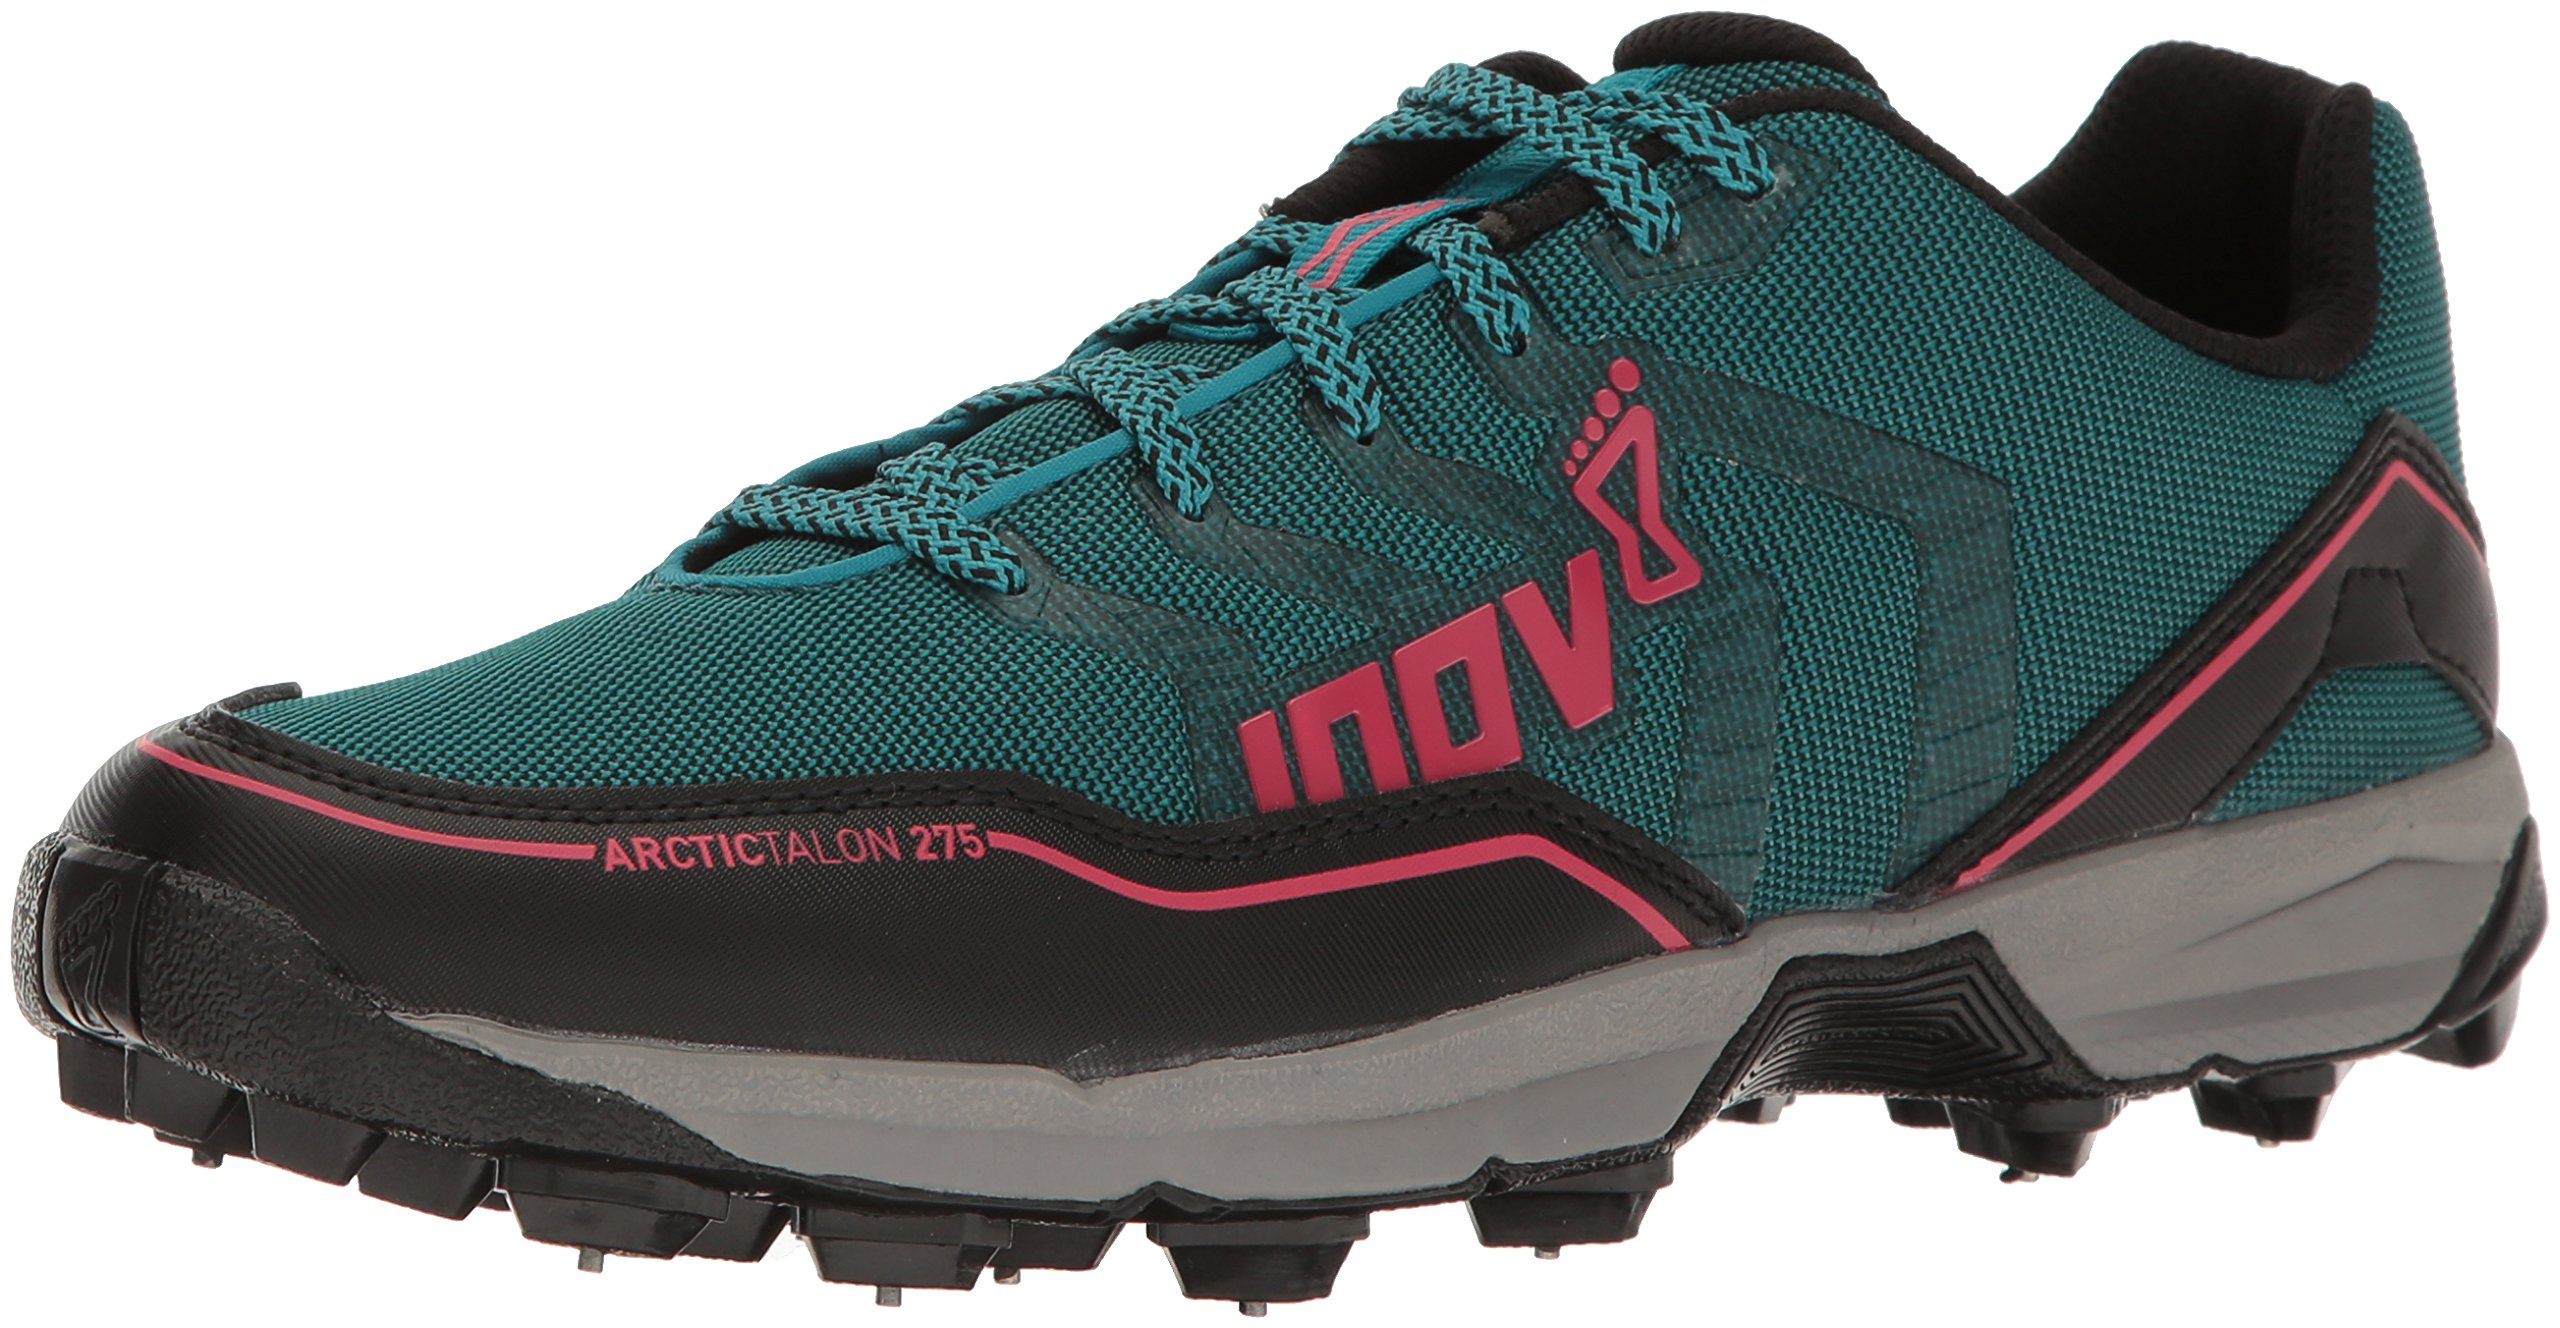 Inov-8 Women's Arctic Talon 275 Trail Runner, Teal/Black/Pink, 7 C US